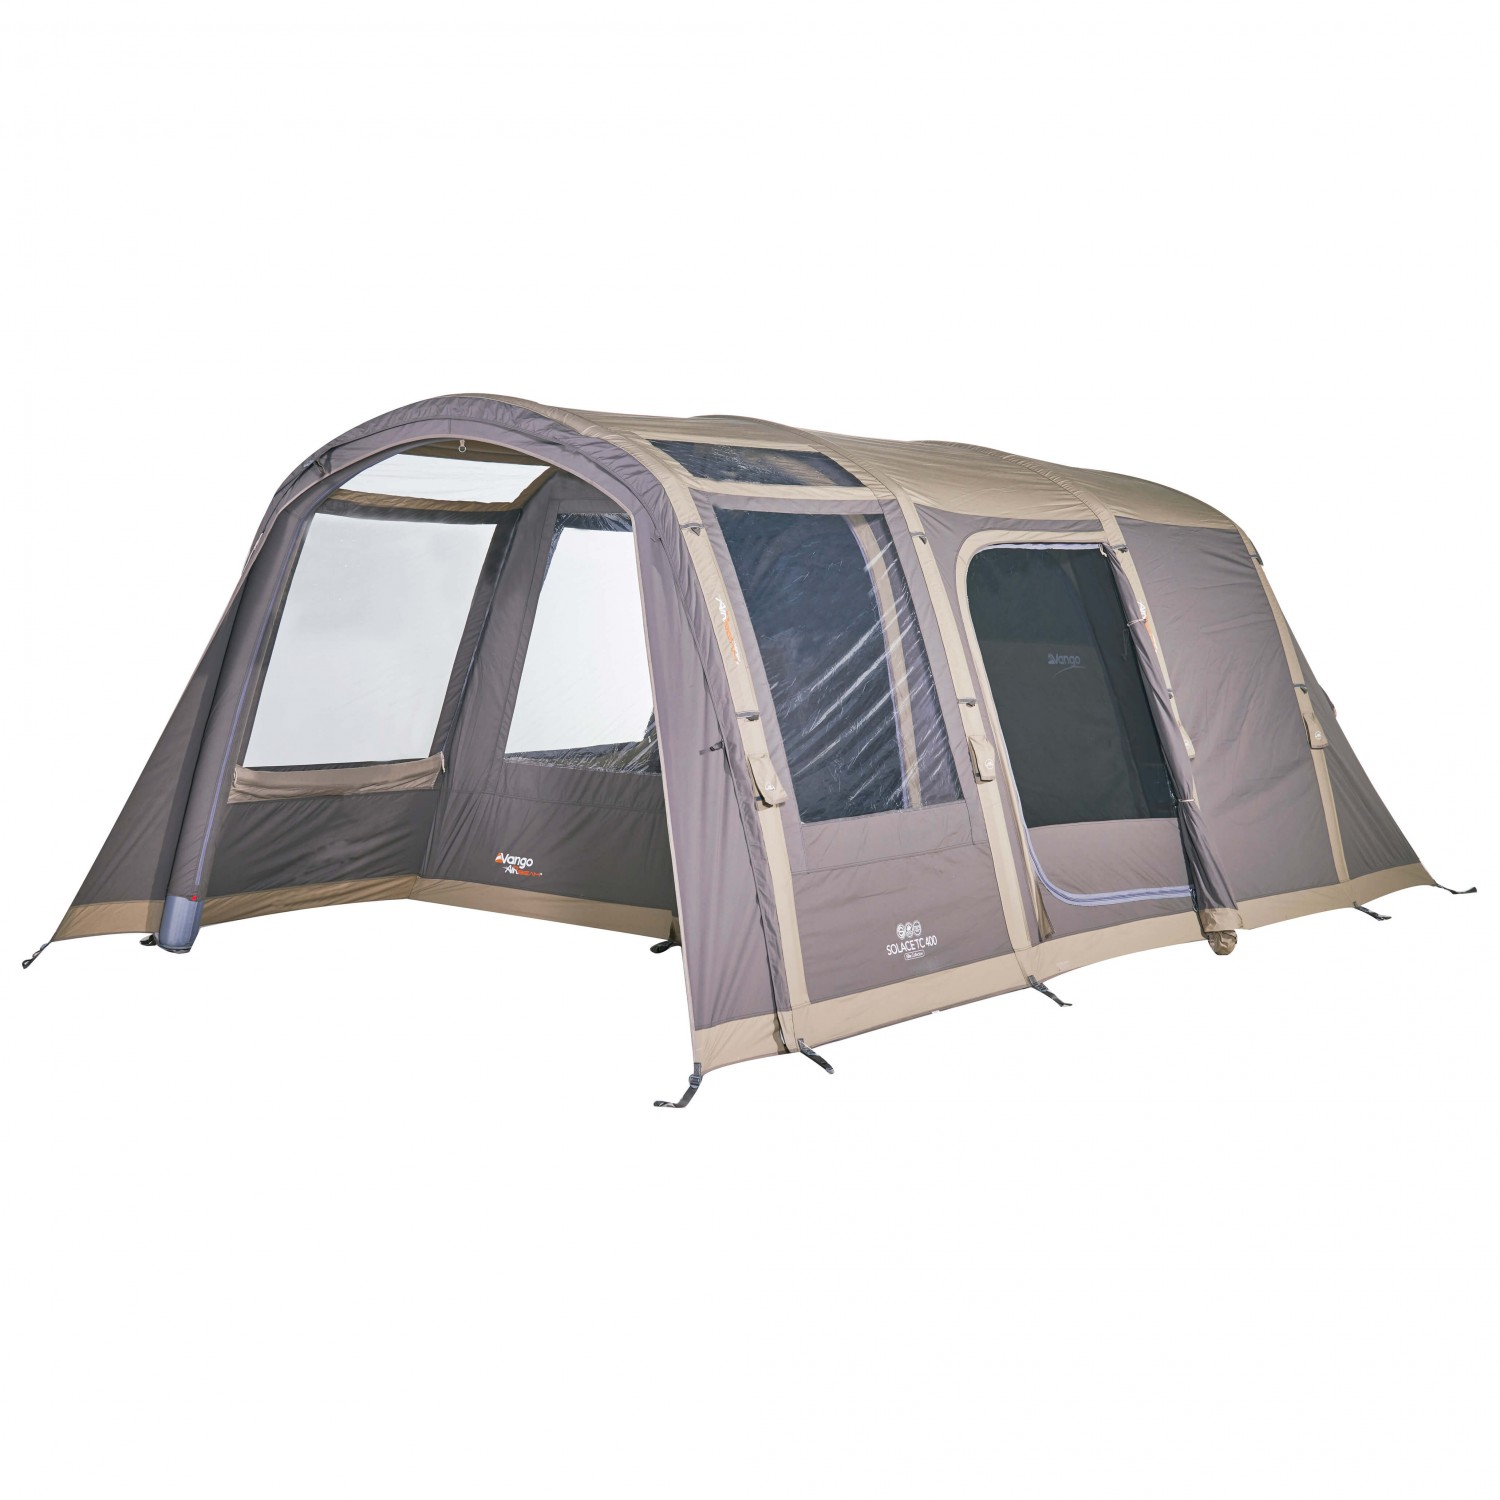 Vango - Solace TC 400 - 4-8 man tent  sc 1 st  Alpinetrek & Vango Solace TC 400 - 4-8 Man Tent | Free UK Delivery | Alpinetrek ...